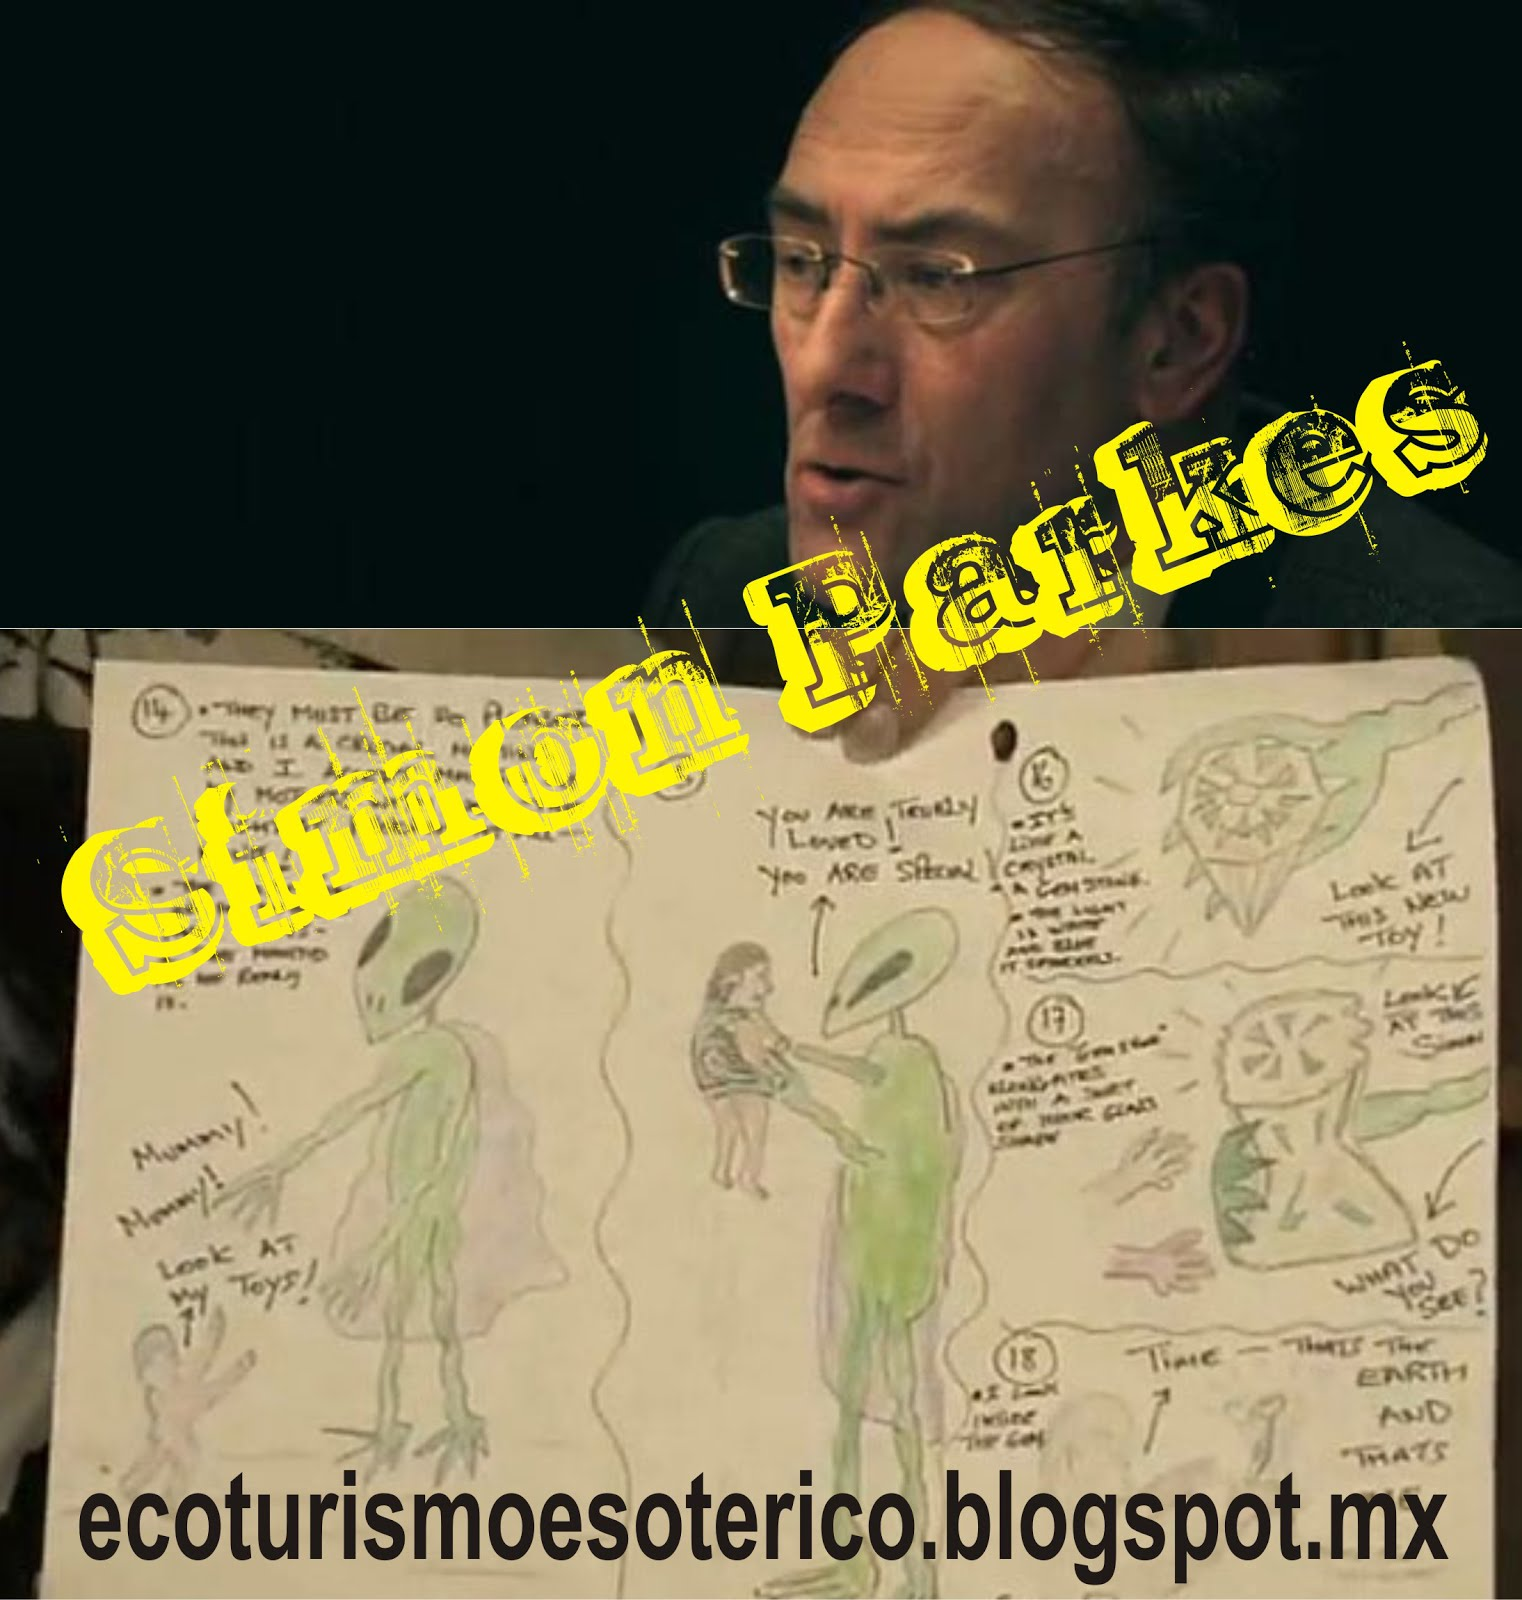 Simon Parkes - ENTENDIENDO MUCHAS COSAS DE LOS EXTRATERRESTRES Y TODAS LAS AGENDAS